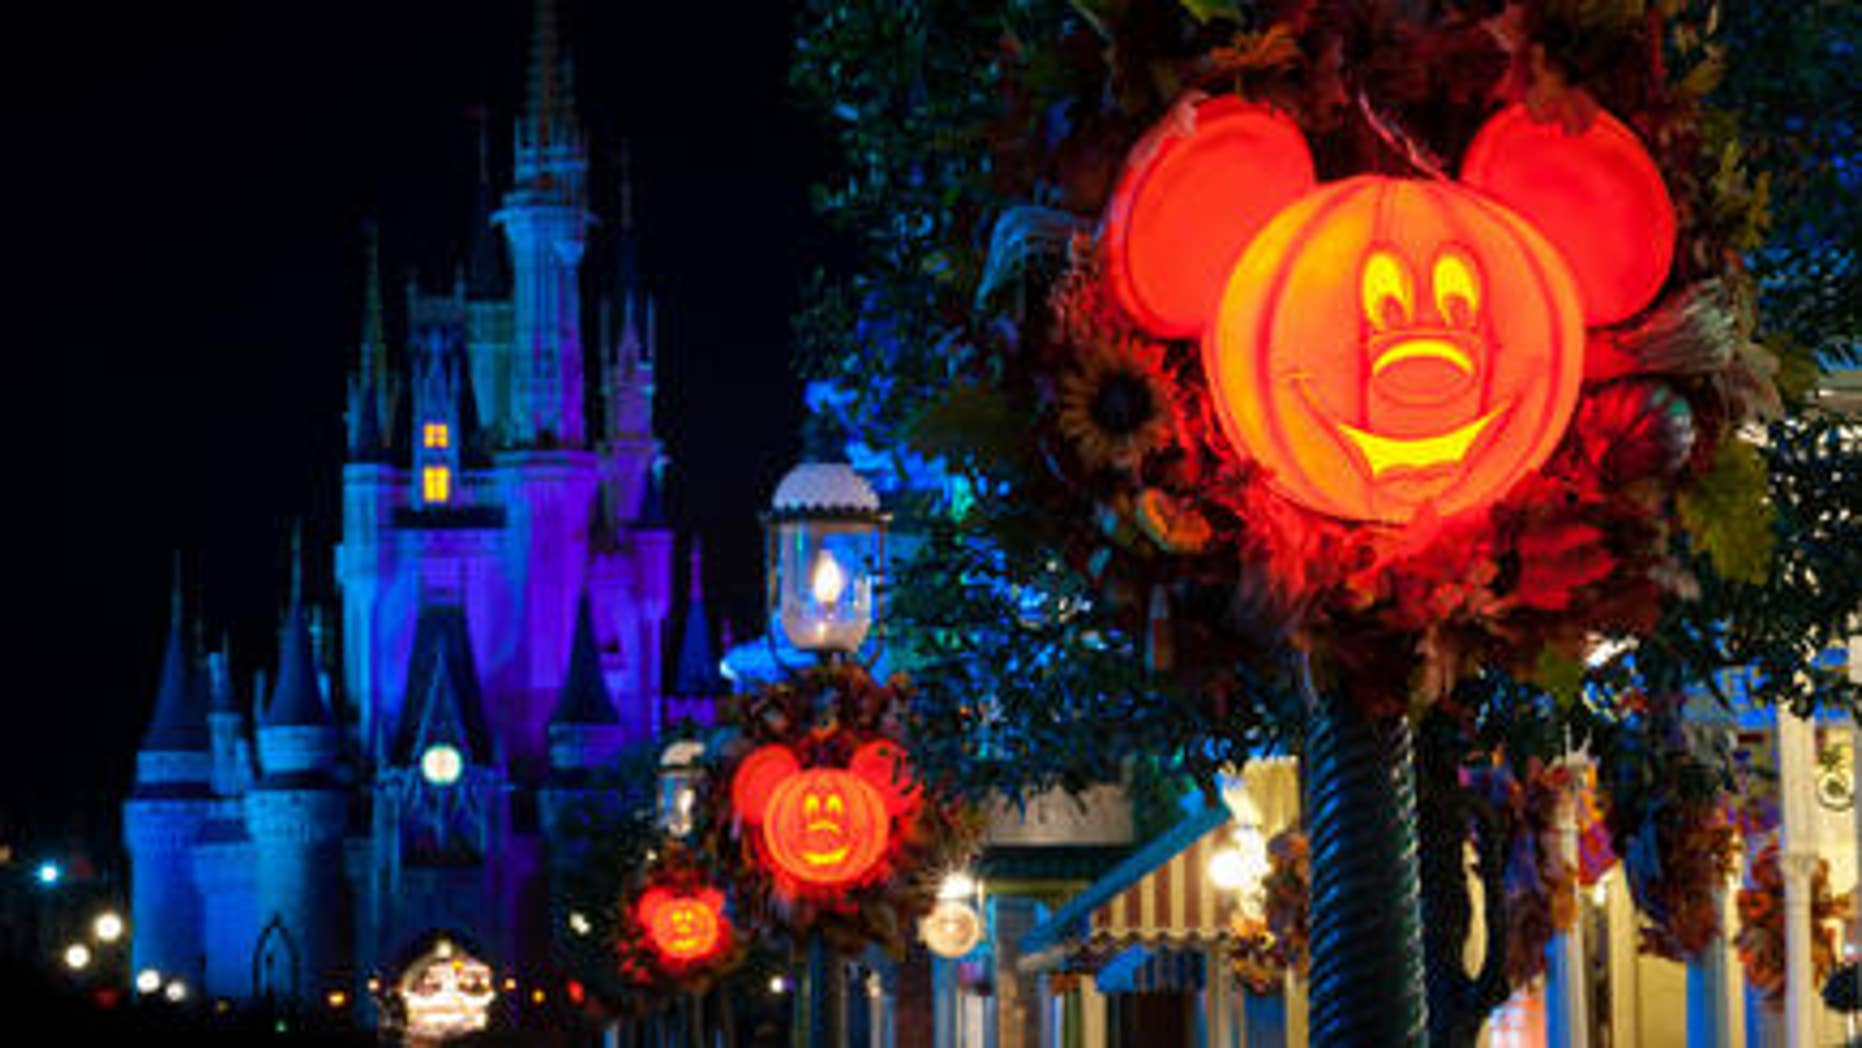 disney villains have their night at mickey's not-so-scary halloween